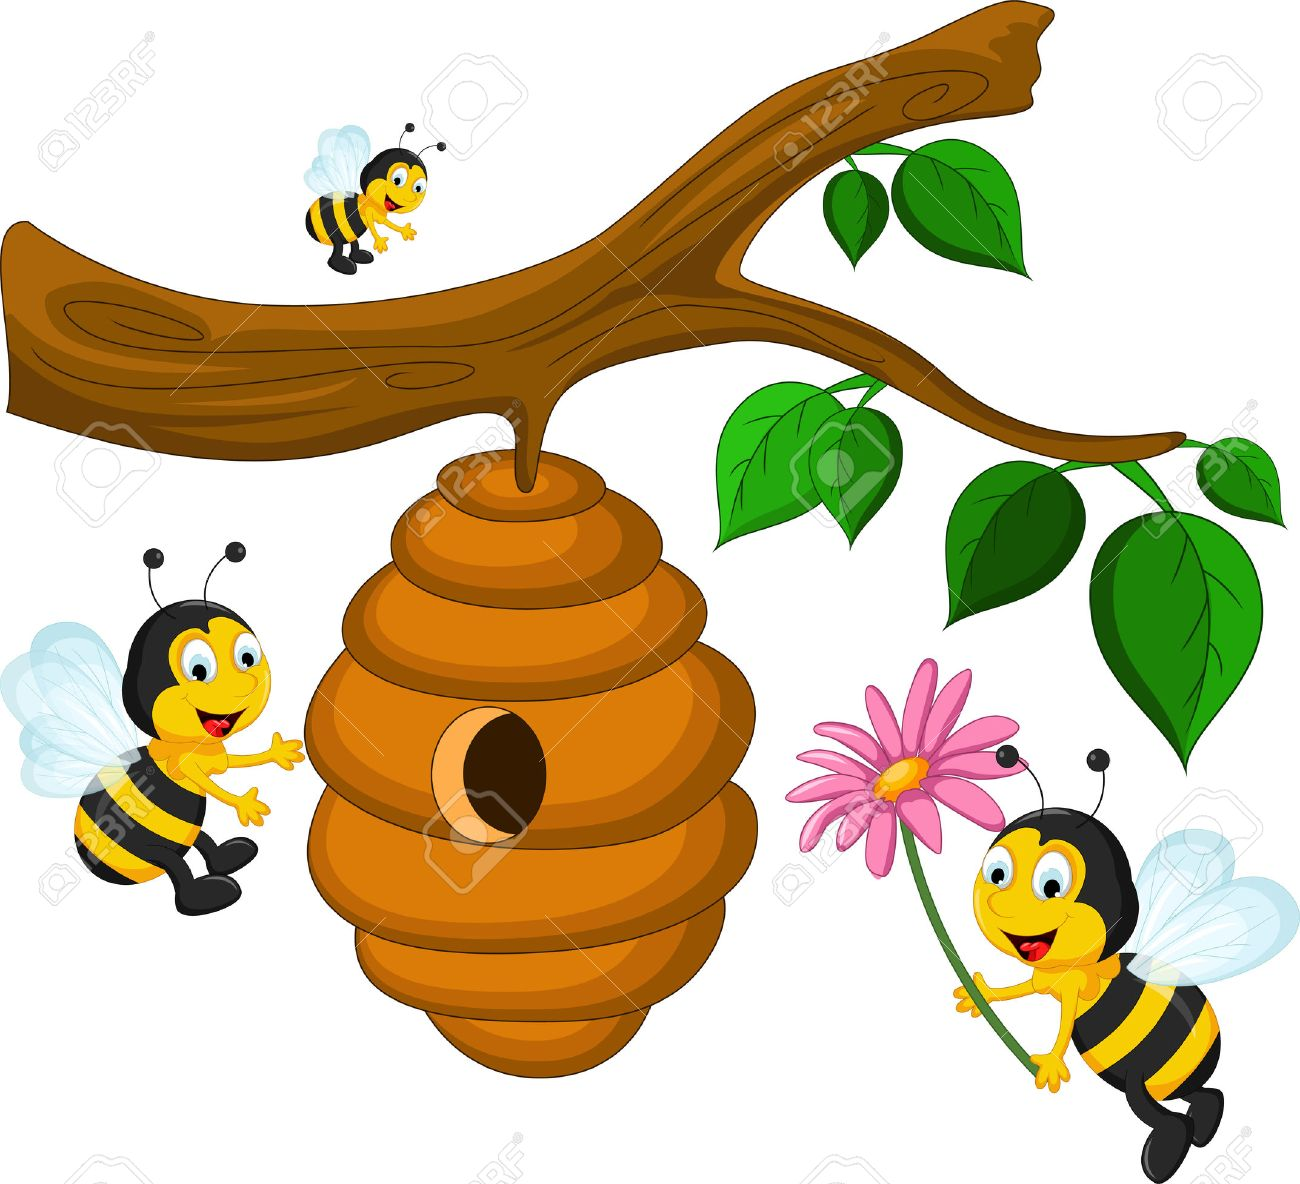 Bees cartoon holding flower and a beehive - 41504149